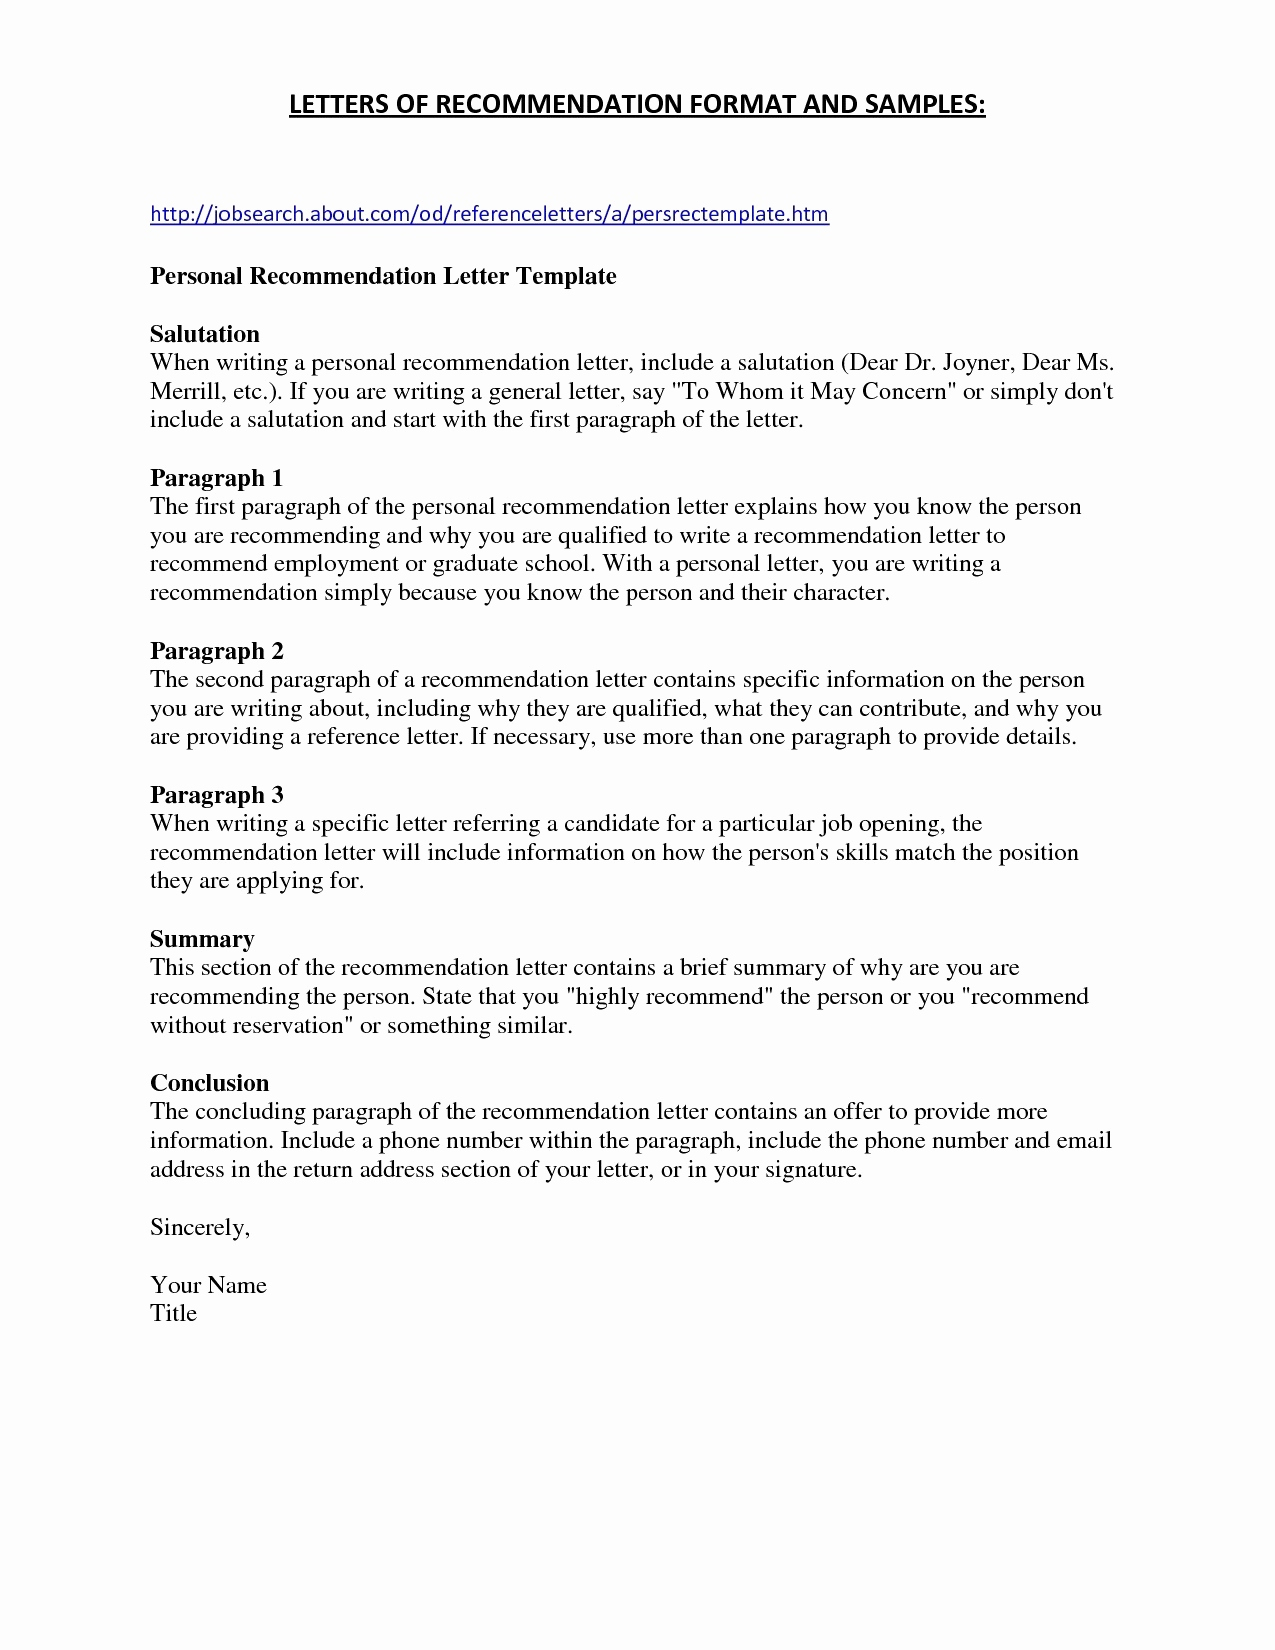 Proxy Letter Template - Ac Modation Request Letter to Pany Sample Homeowners On Proxy